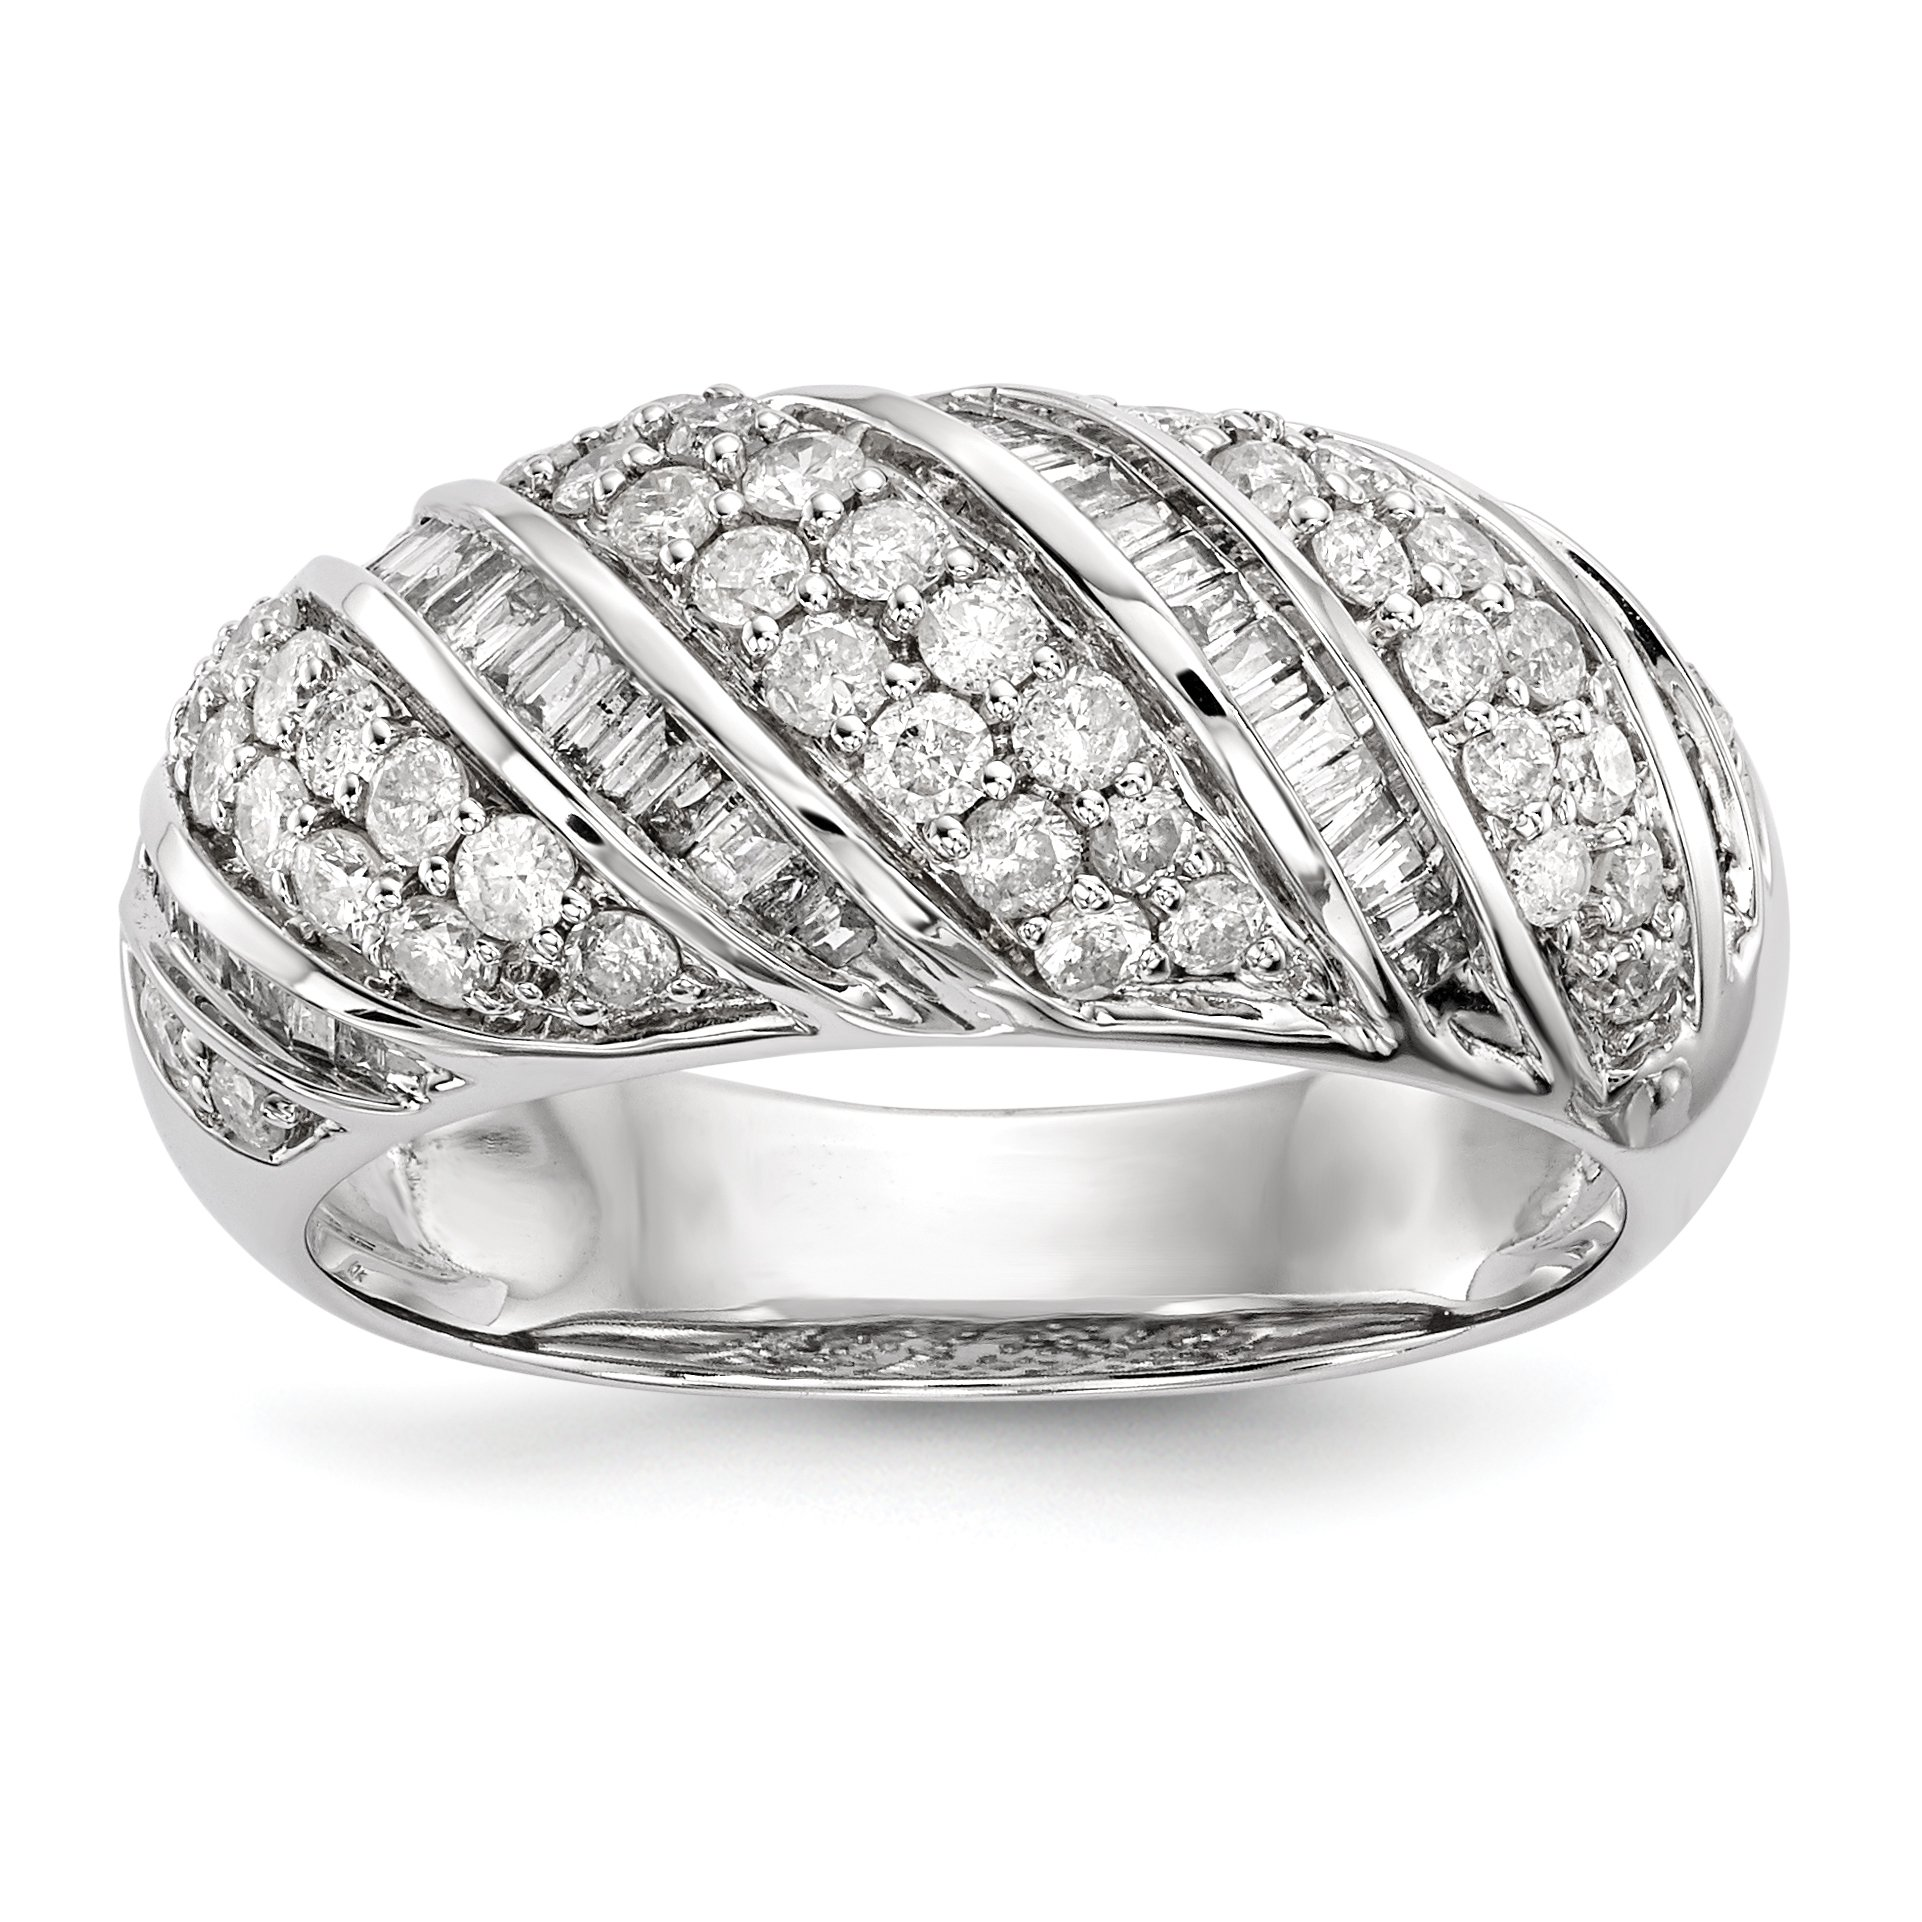 ICE CARATS 14k White Gold Diamond Band Ring Size 6.75 Fine Jewelry Gift Set For Women Heart